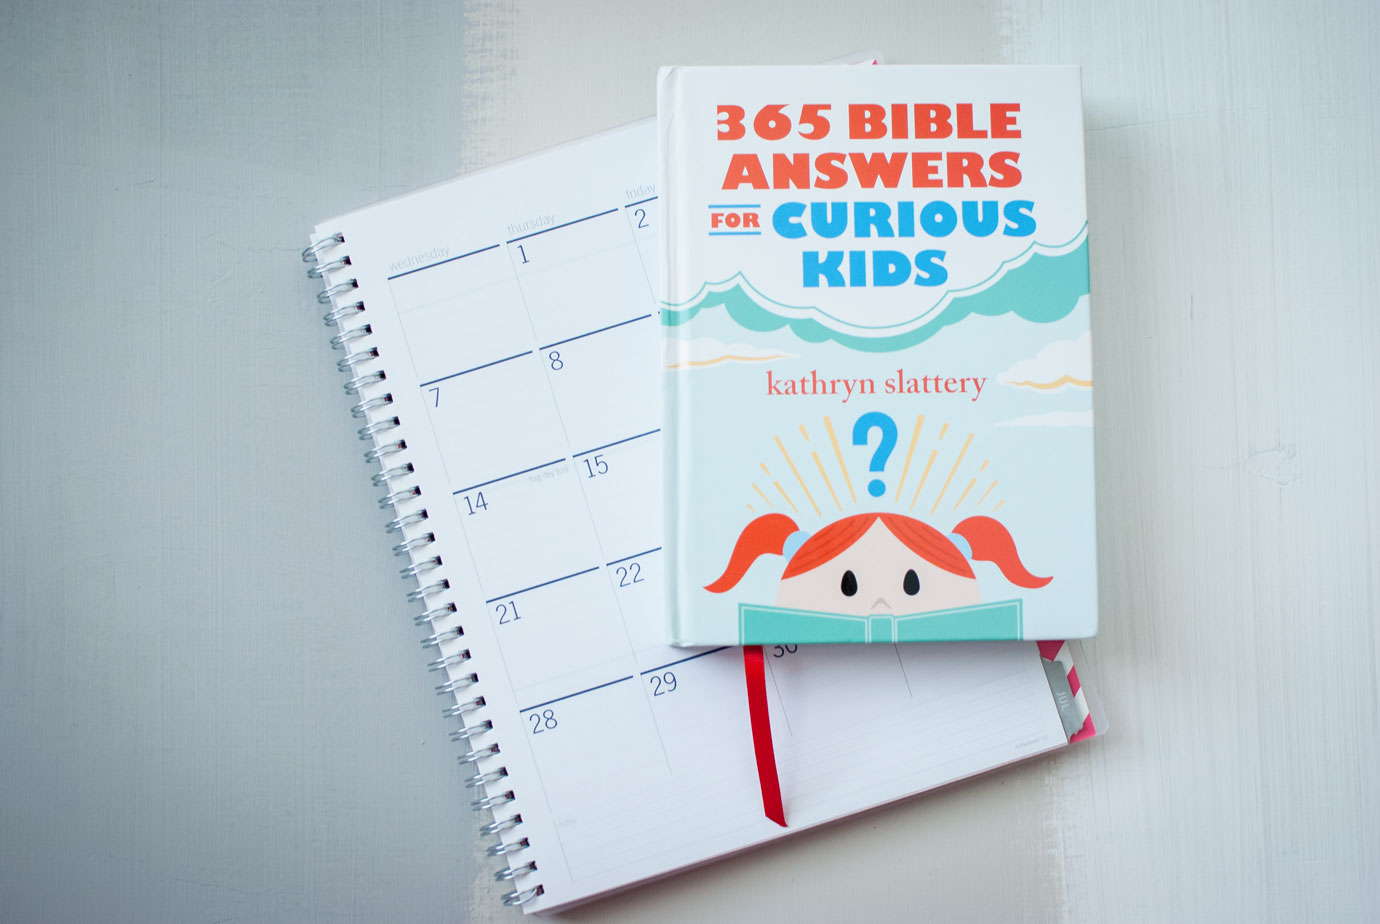 365 Bible Answers For Curious Kids by Kathryn Slattery